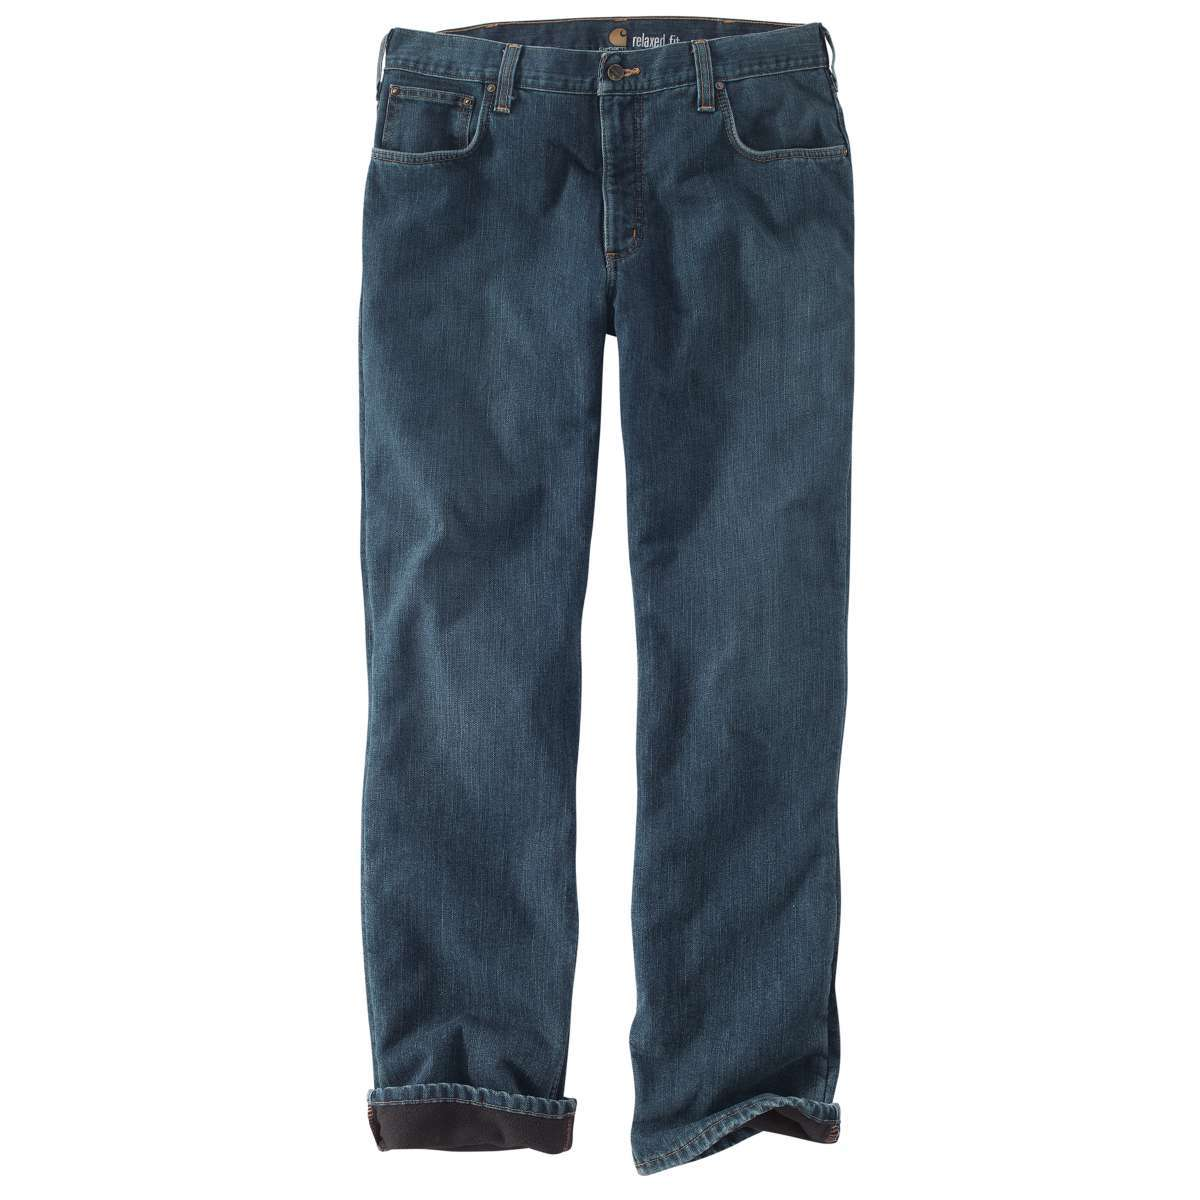 Carhartt Men's Relaxed Fit Holter Jean/fleece Lined Jean Pant - Blue, 32/34